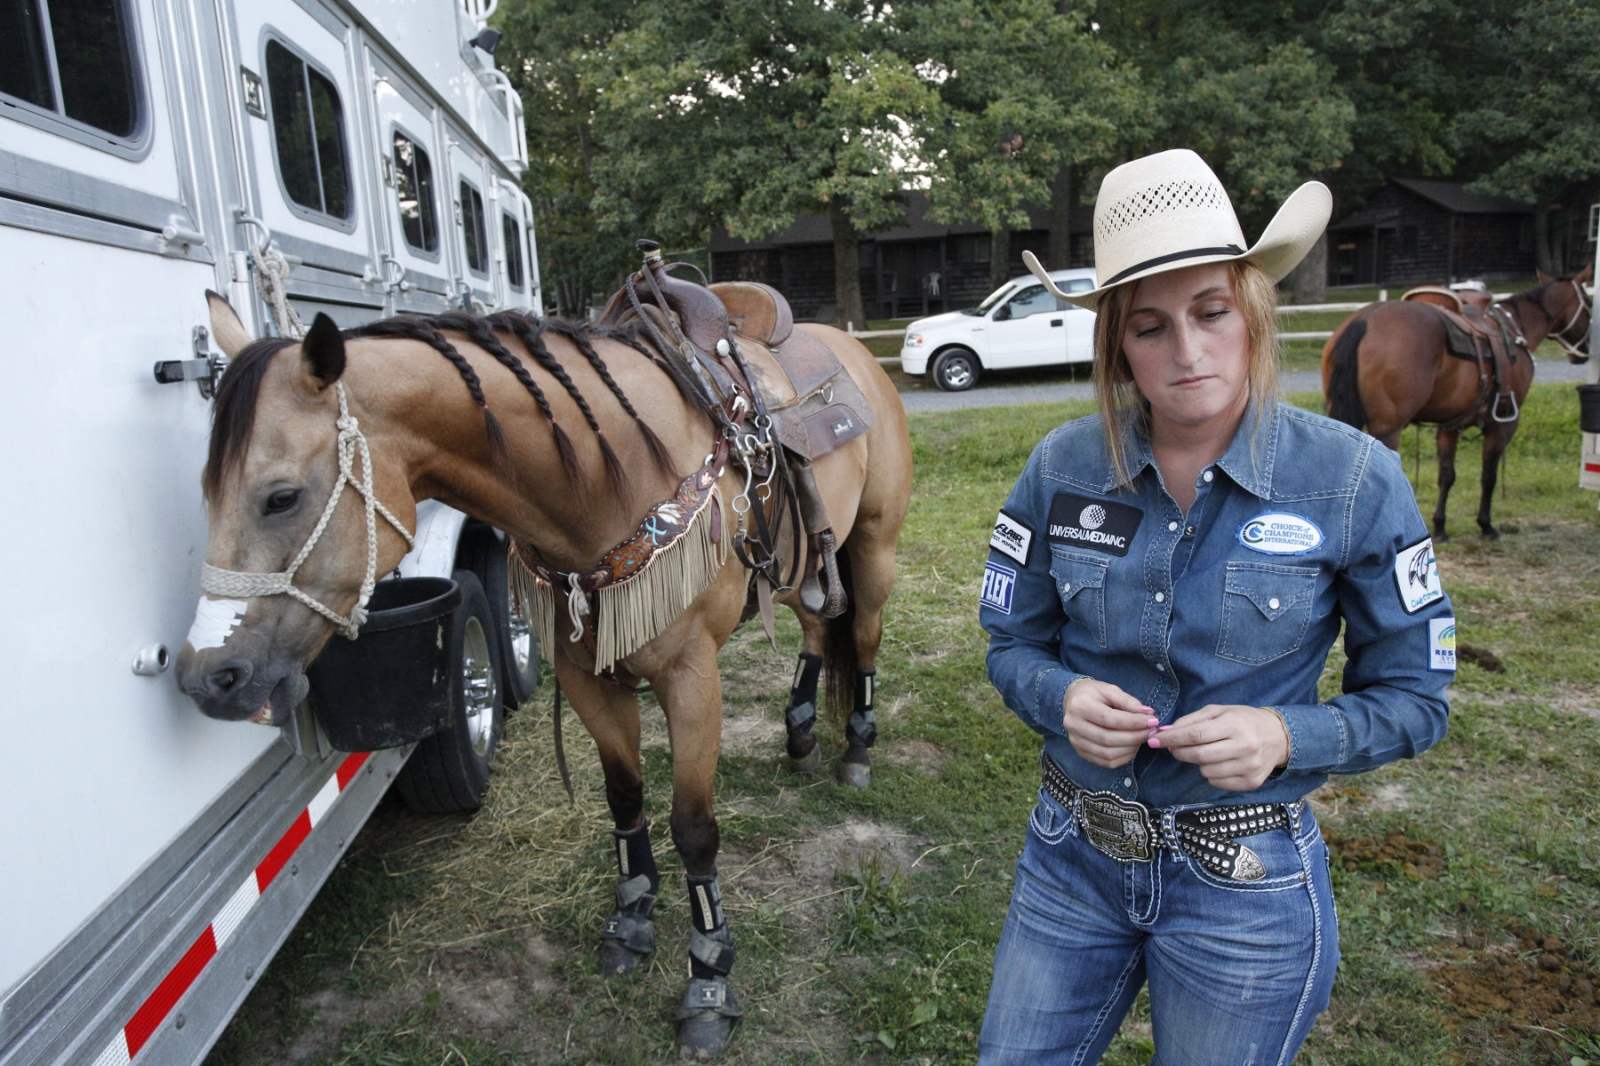 Taylor Young listening to the announcer about a young male bull rider who was severely injured at Malibu Rodeo in Milford, Pennsylvania.(Kevin C. Downs/Agence Cosmos)